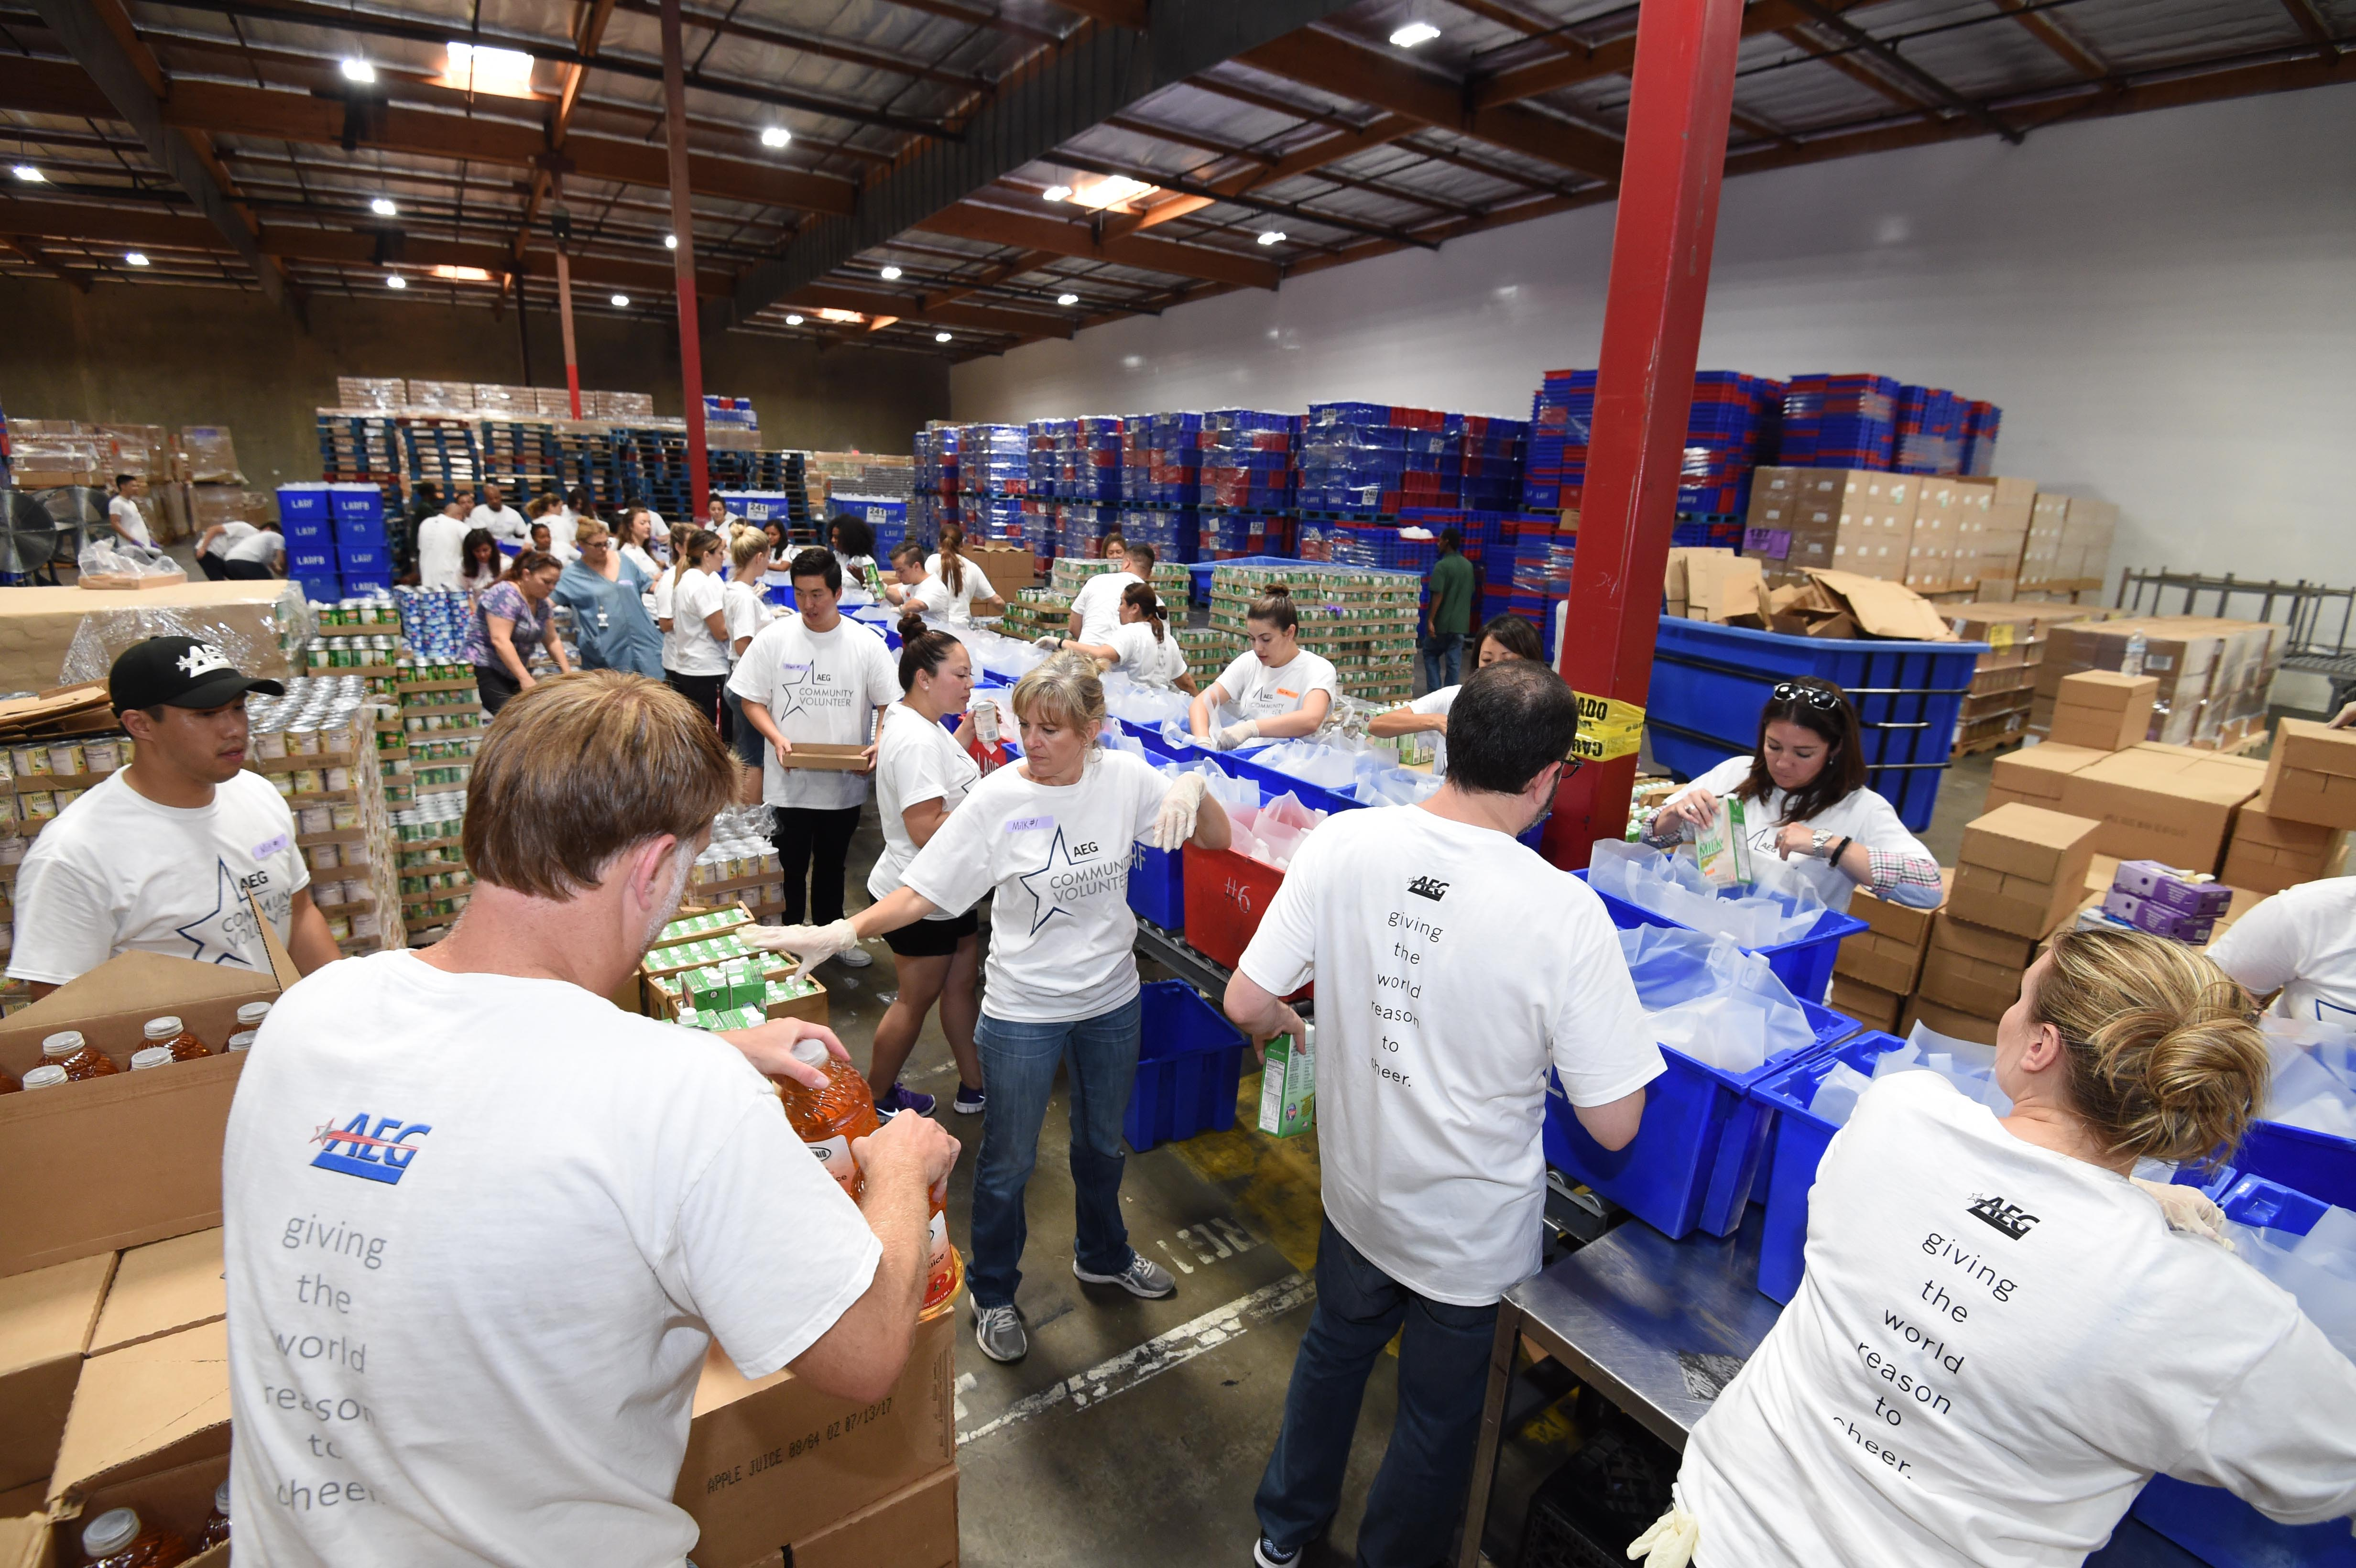 Aeg Partners With Los Angeles Regional Food Bank To Host Community